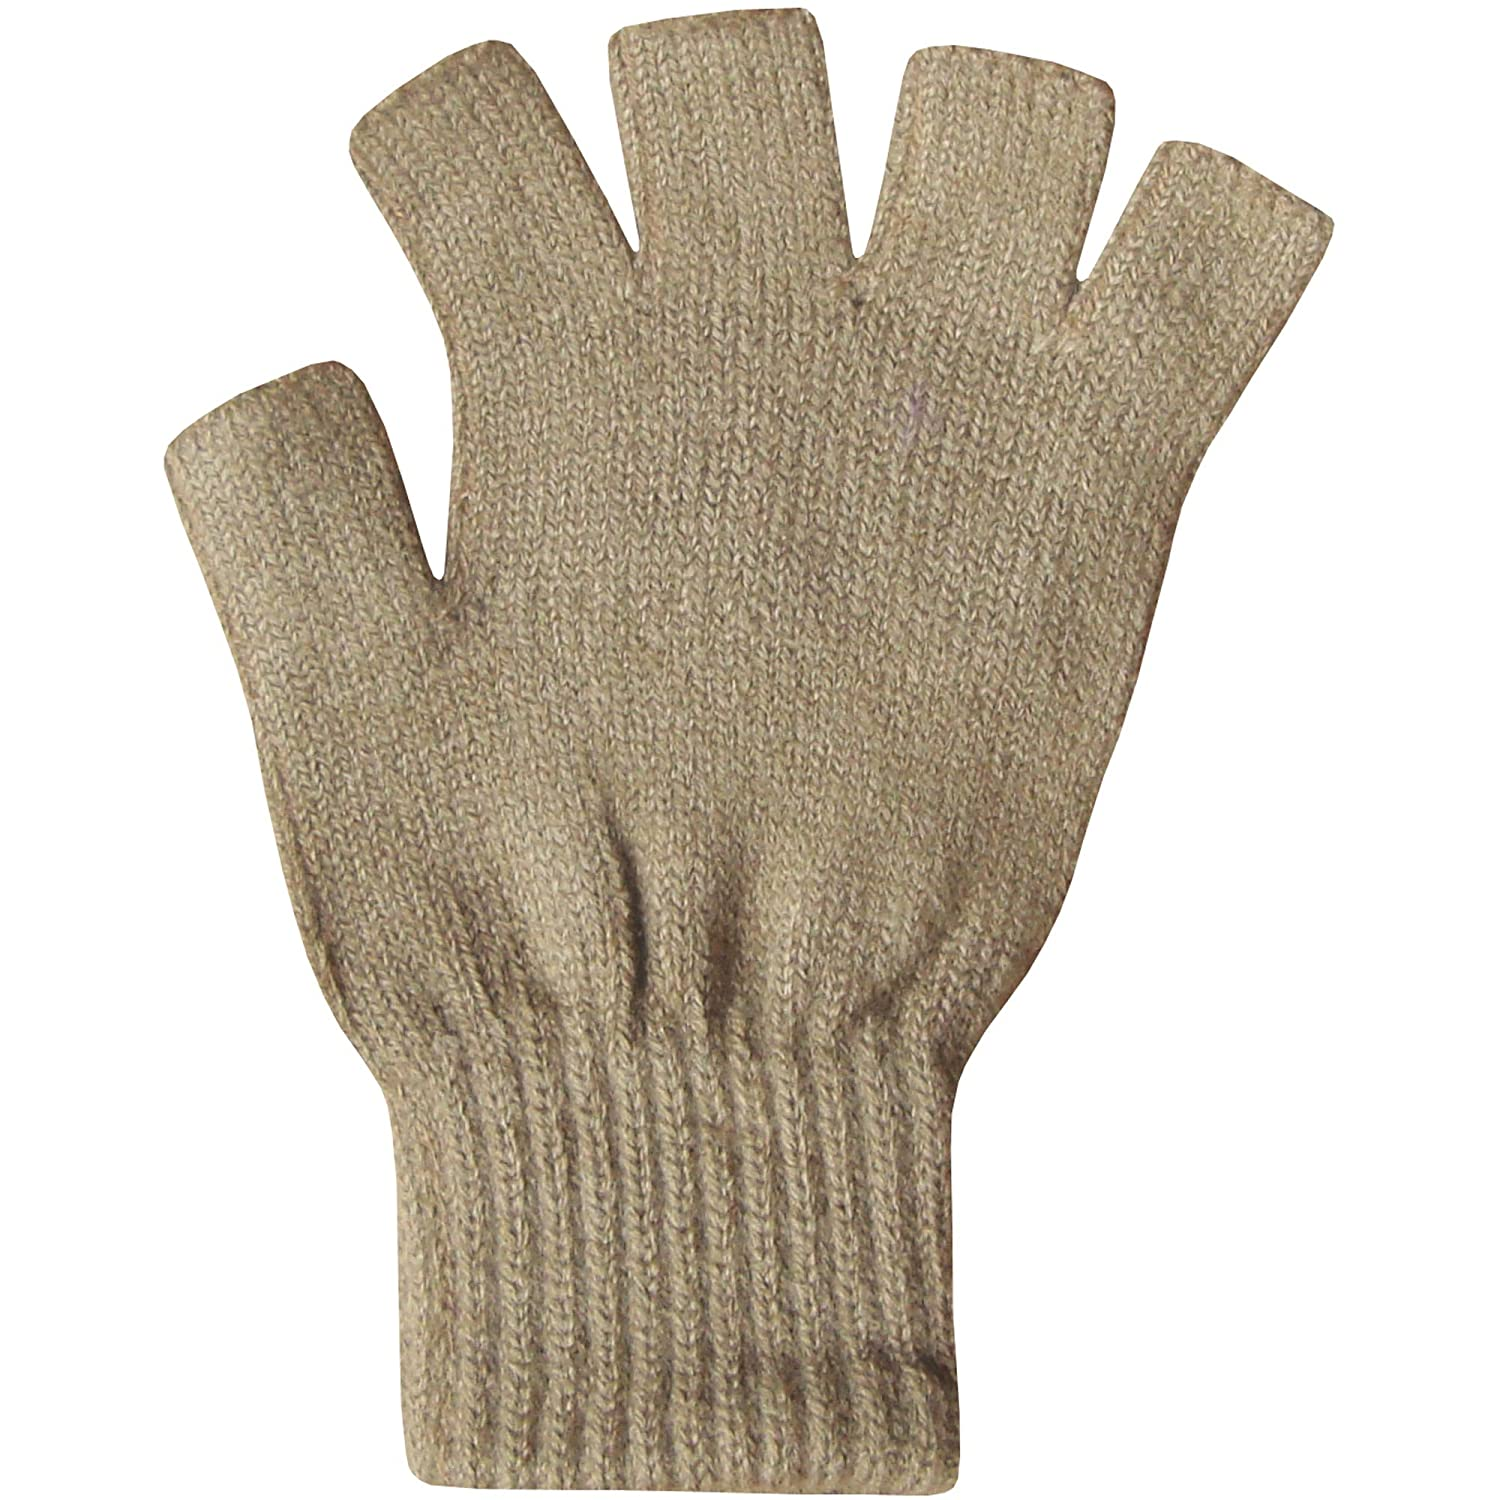 Ladies thermal leather gloves uk - Ladies Super Soft Warm Fine Knit Thermal Fingerless Winter Gloves Beige Amazon Co Uk Clothing